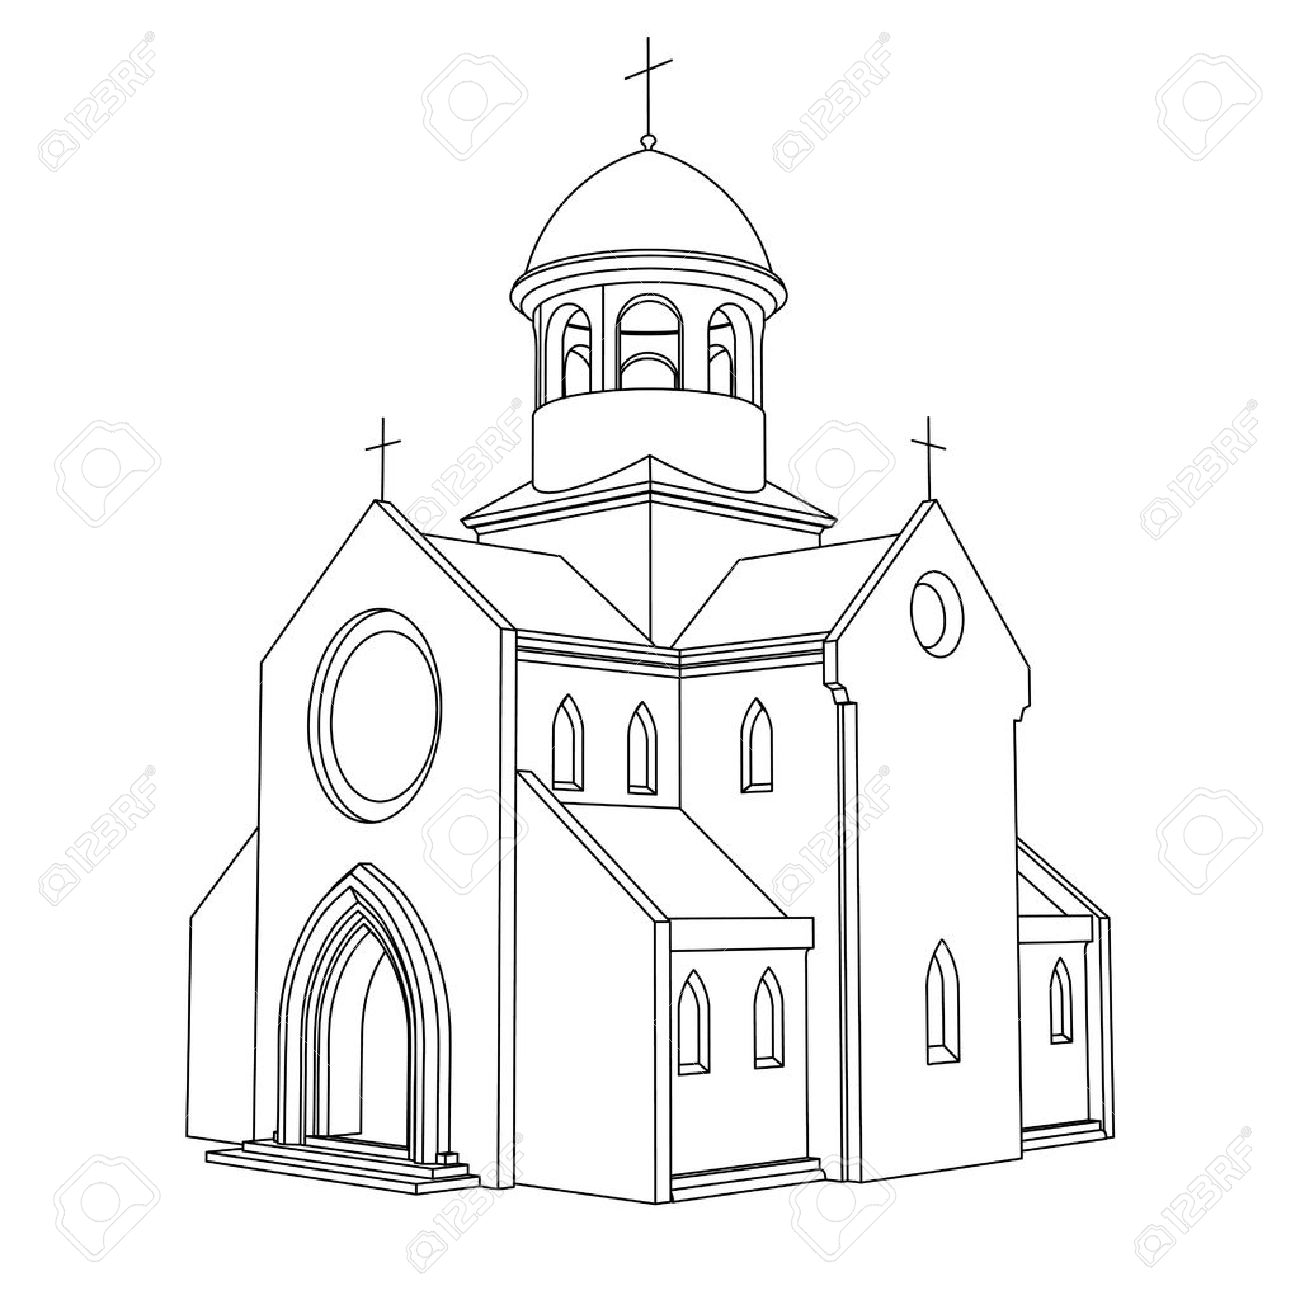 1300x1300 Line Art Ancient Basilica Drawing Vector Illustration Royalty Free